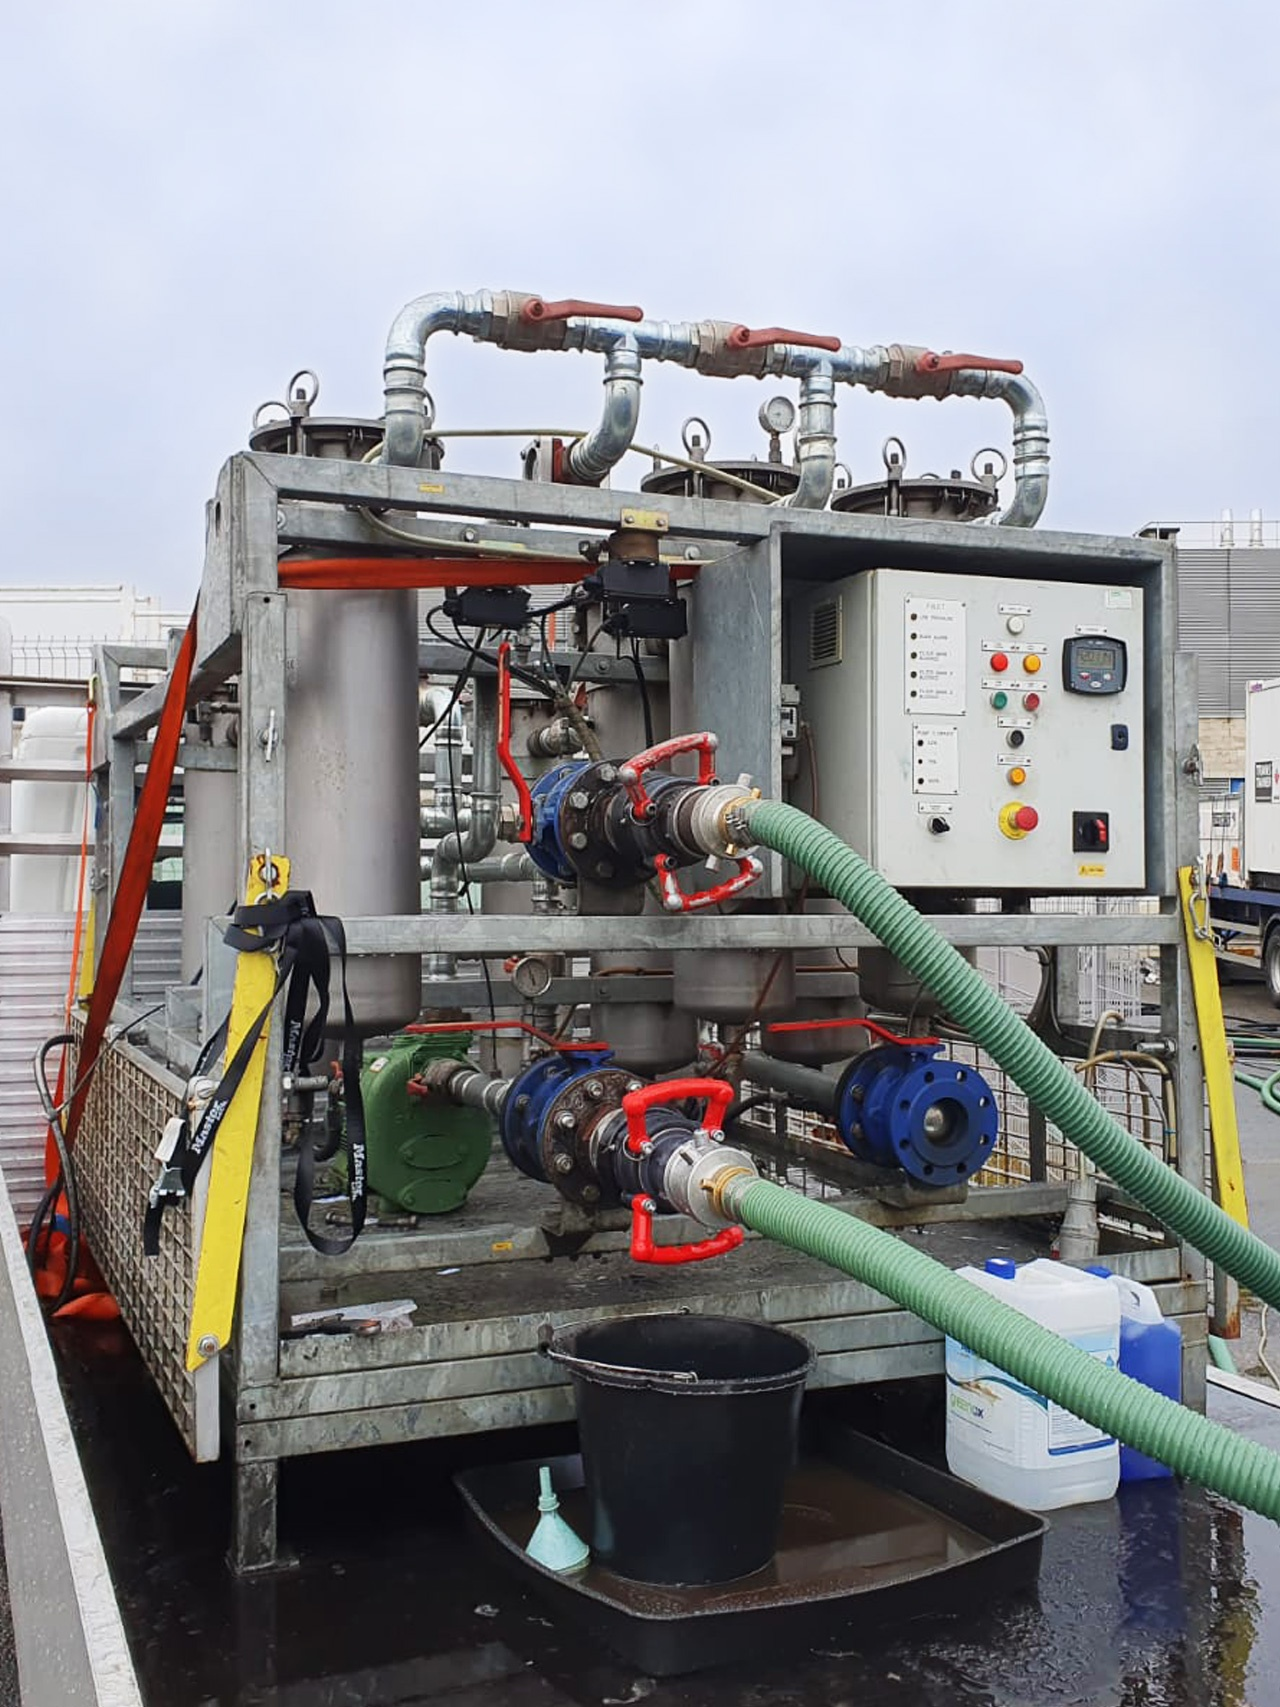 Pic showing a 1st Industrial big rig fuel polishing system